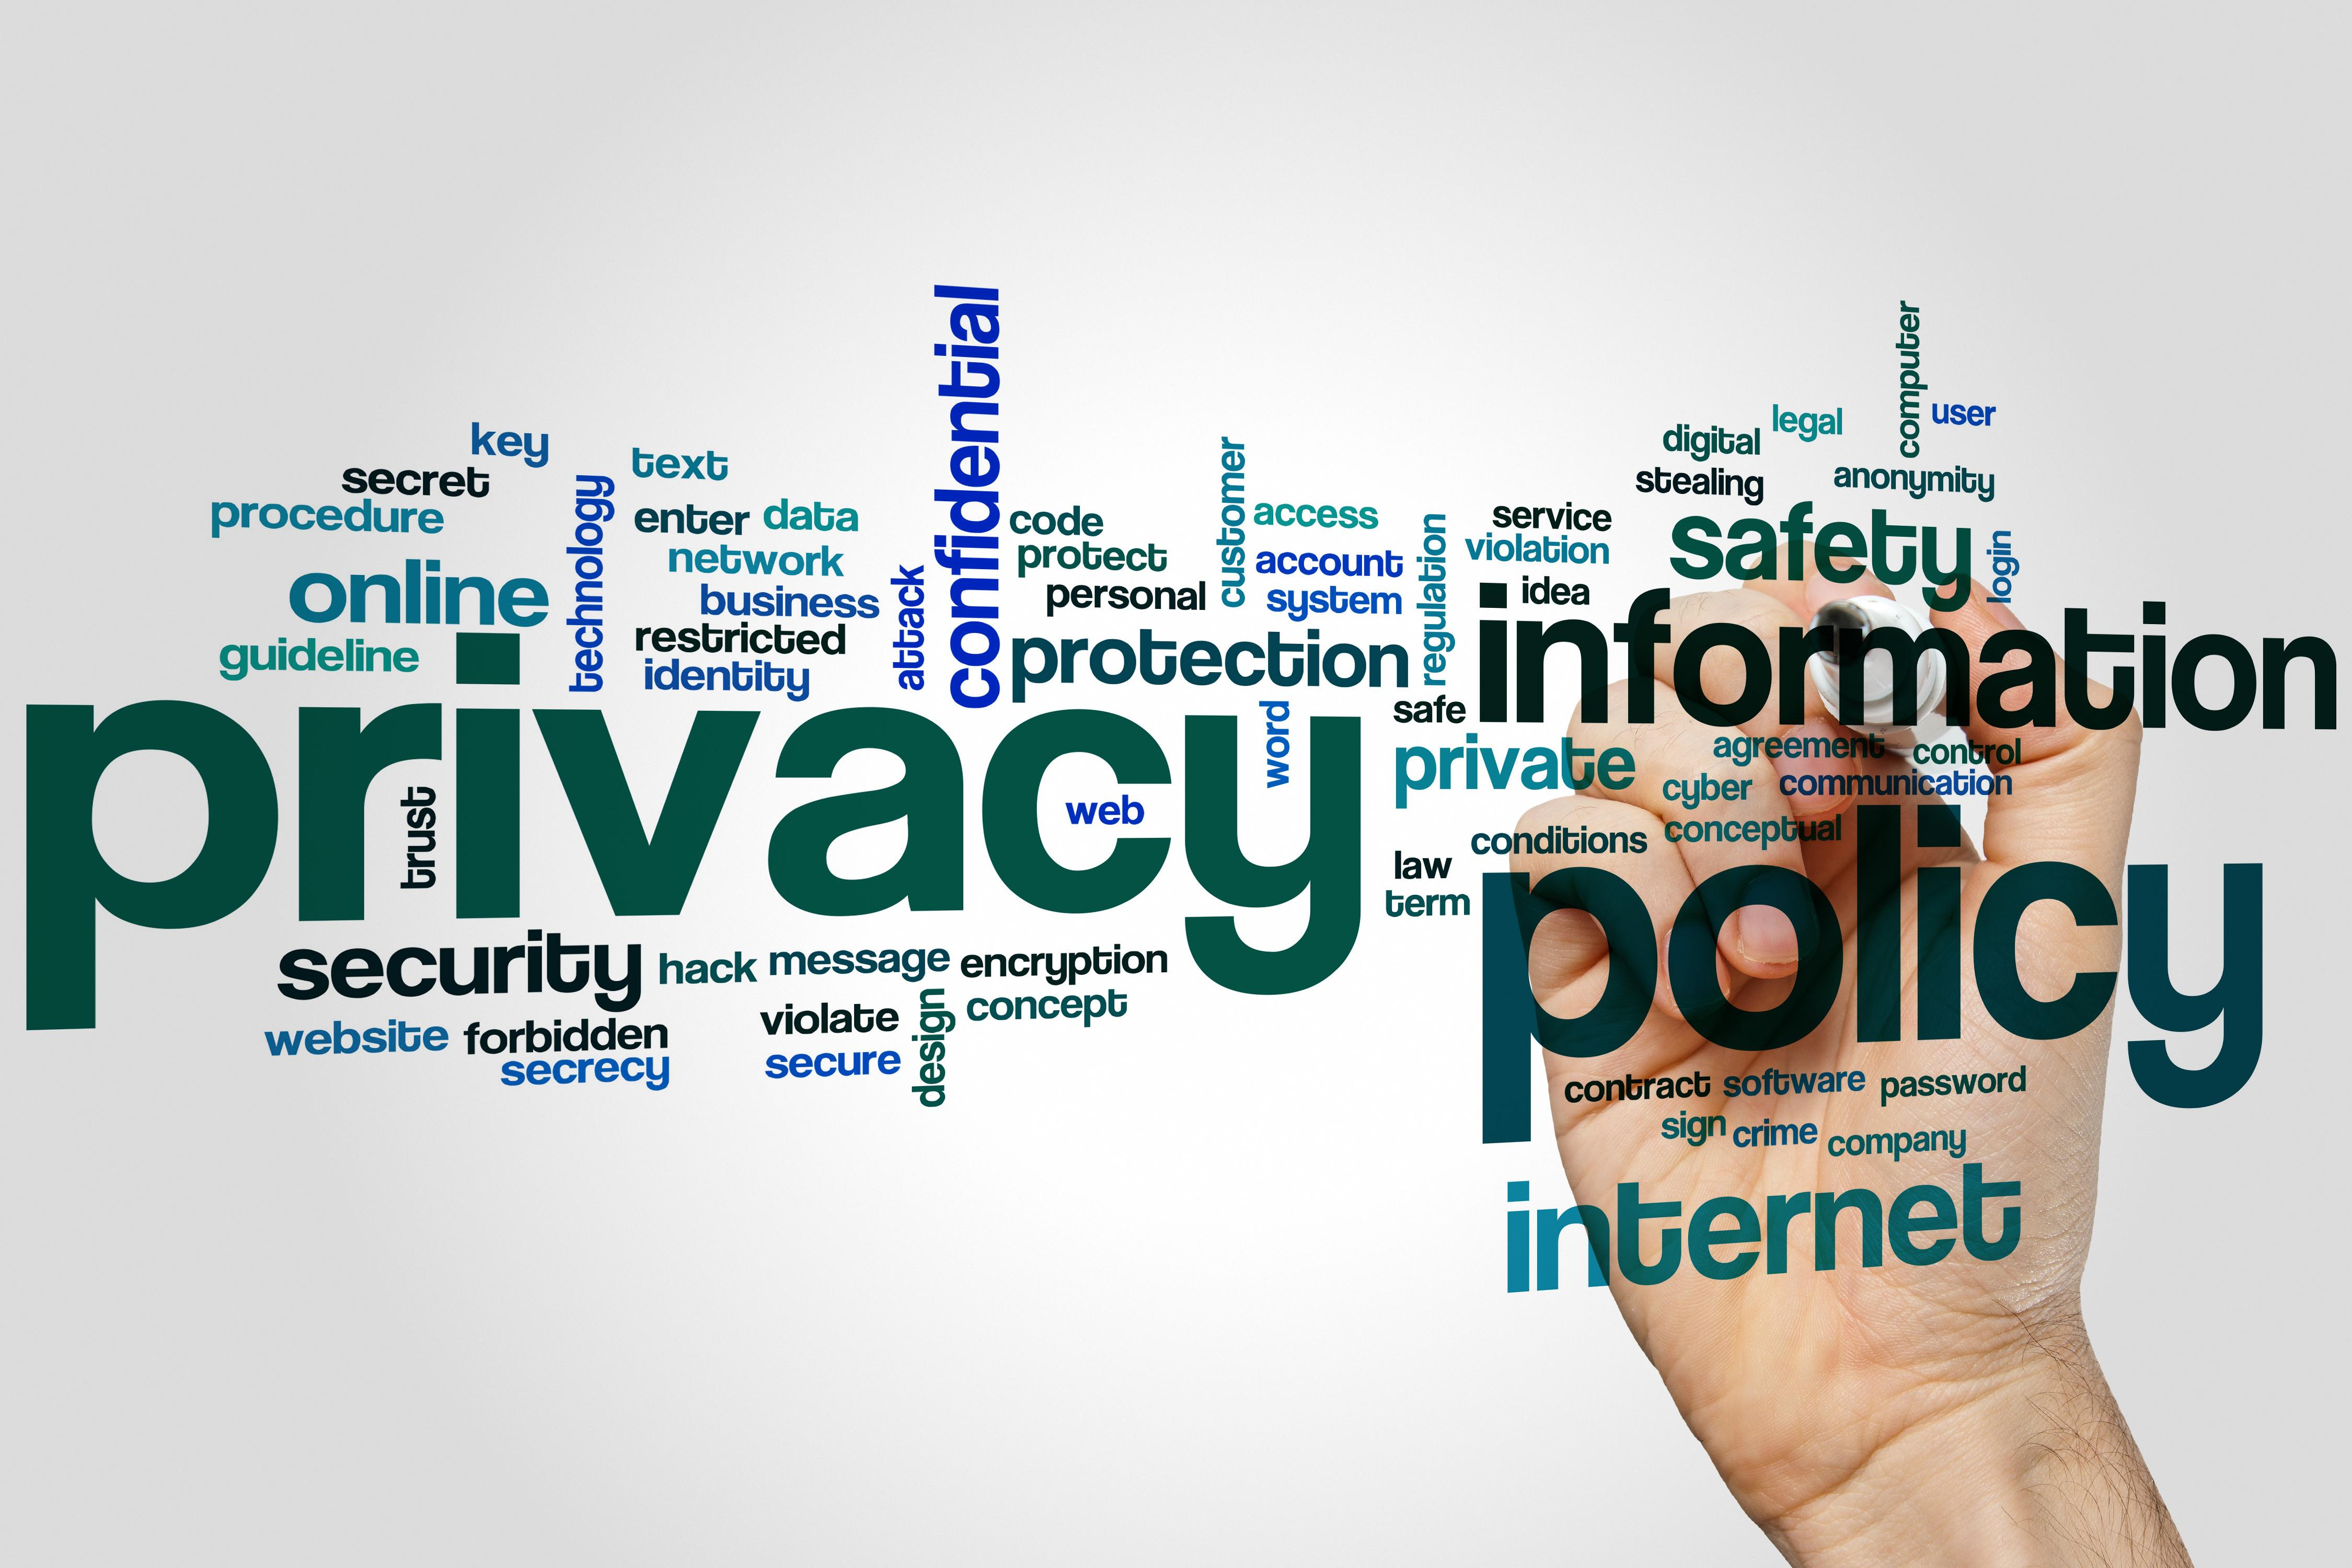 Privacy policy word cloud concept